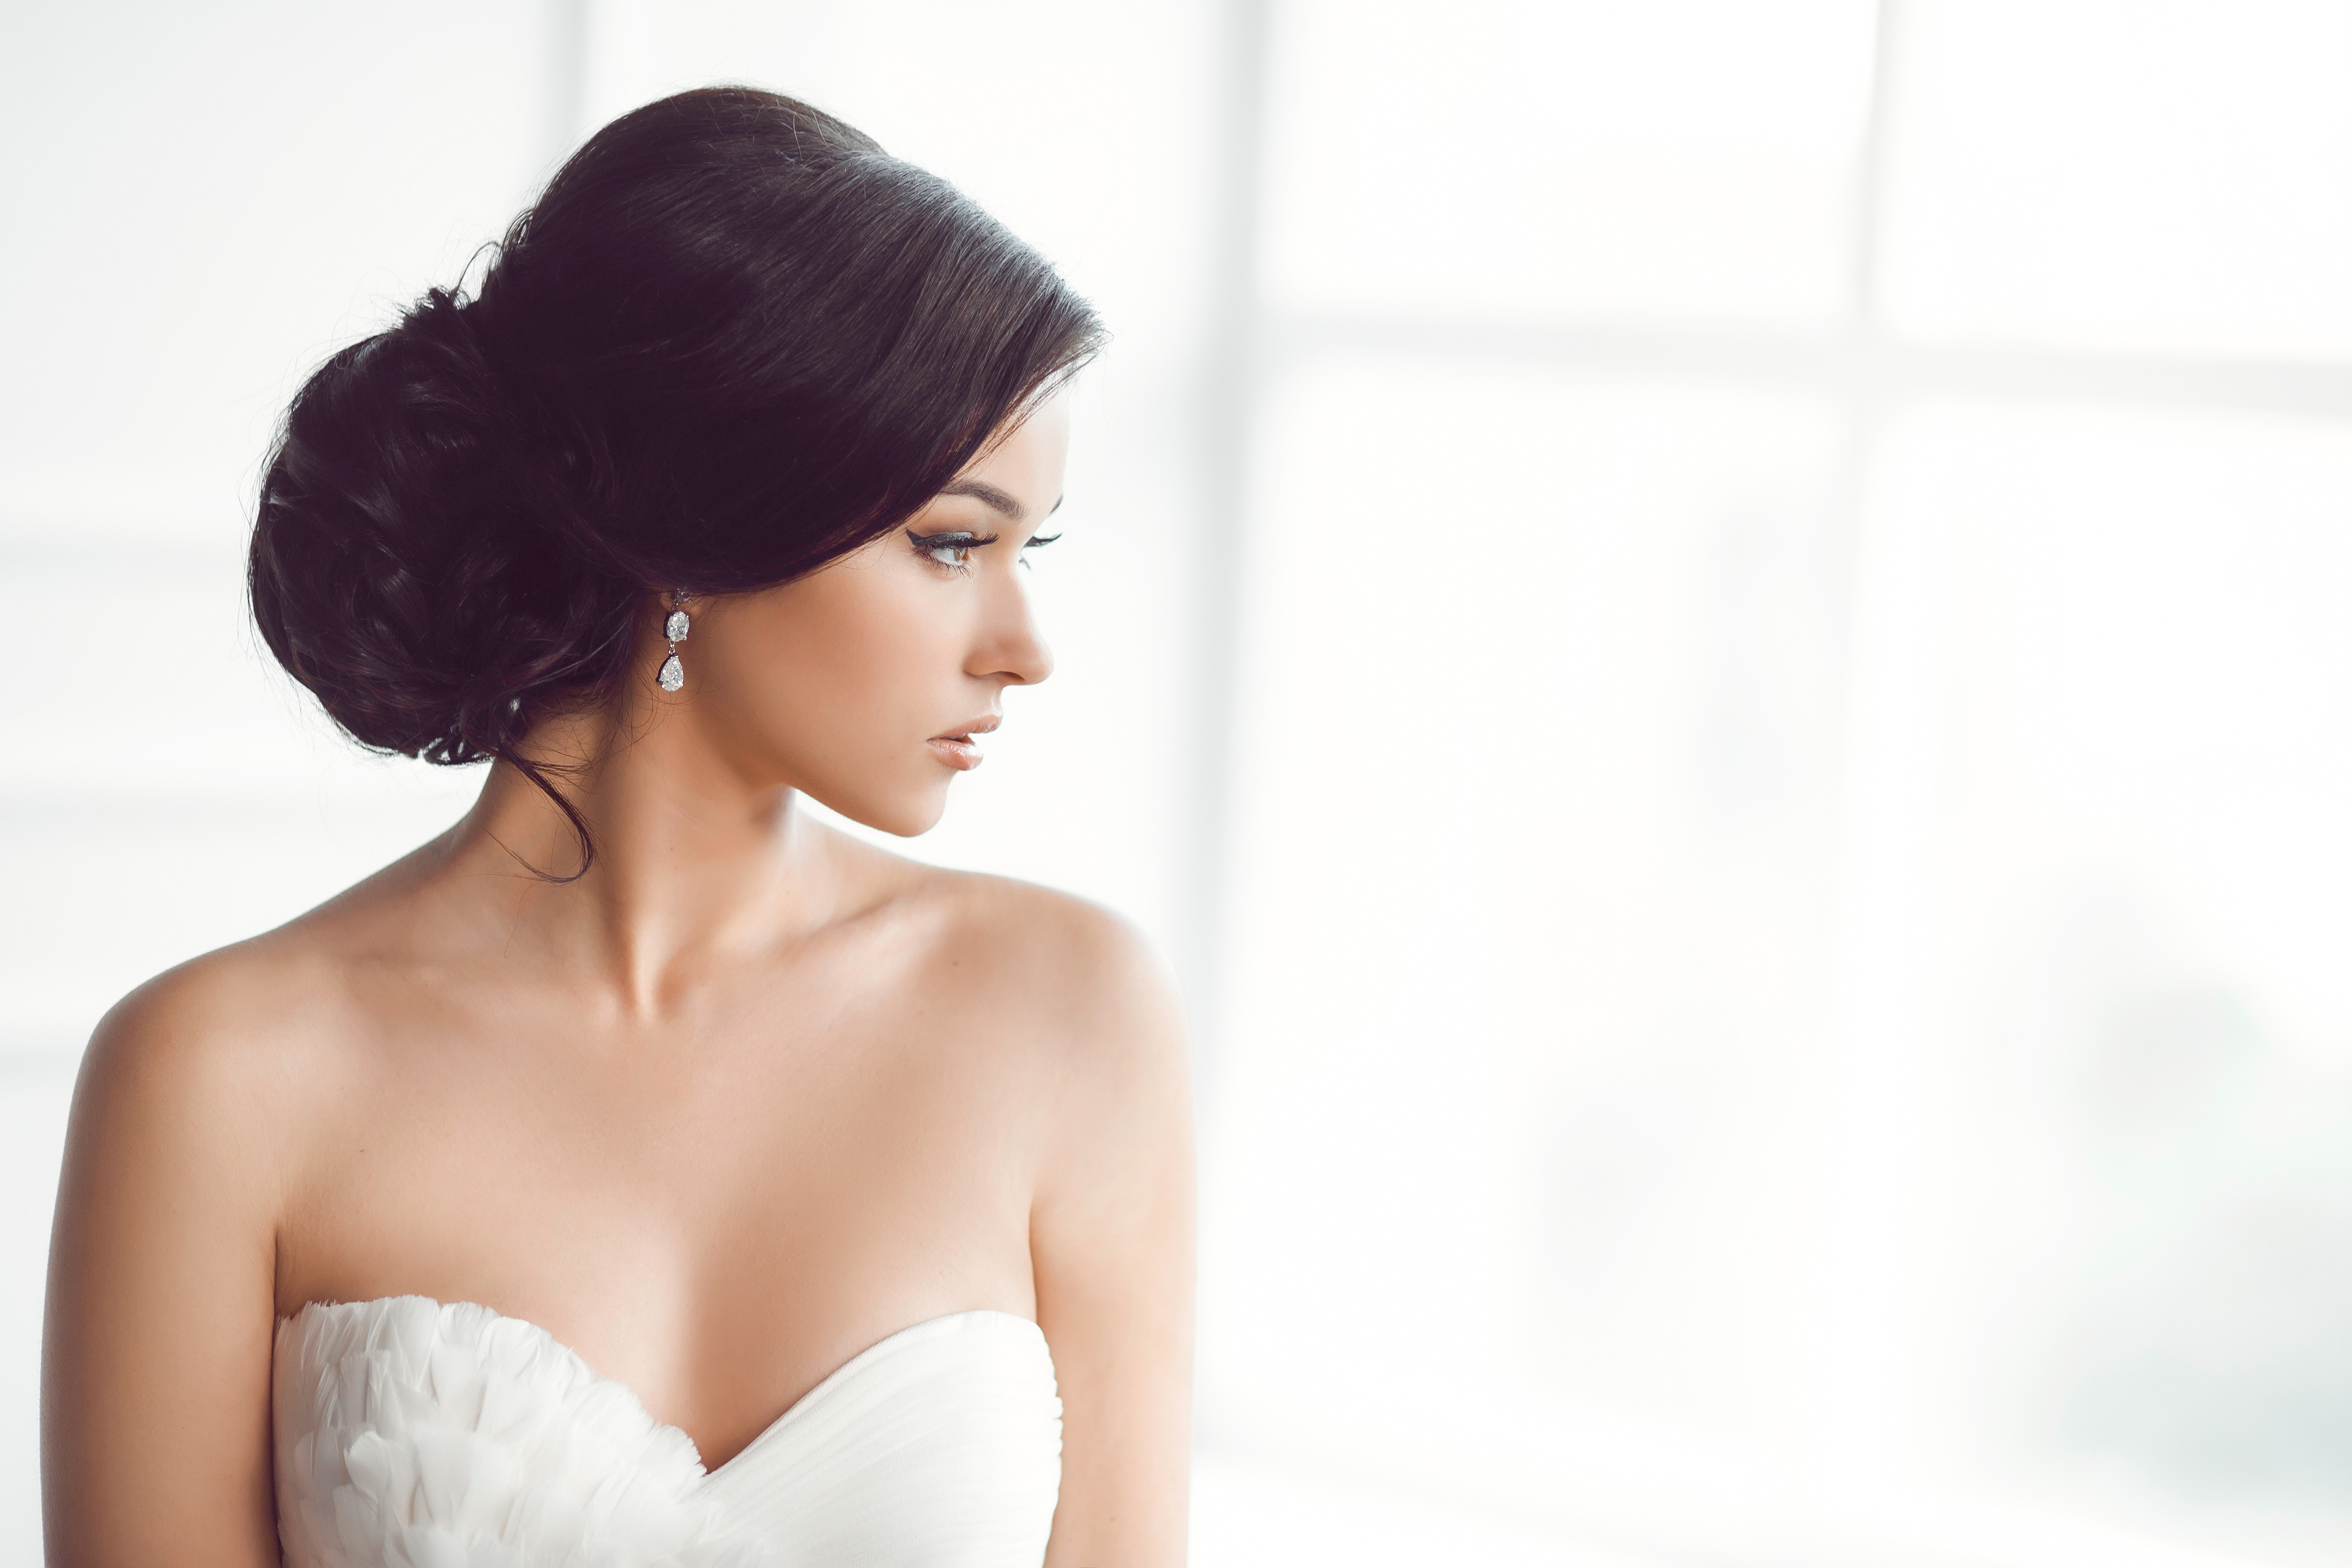 Looking Wedding Ready: How to Reverse the Signs of Aging Before a Big Event with Non-Surgical Fillers